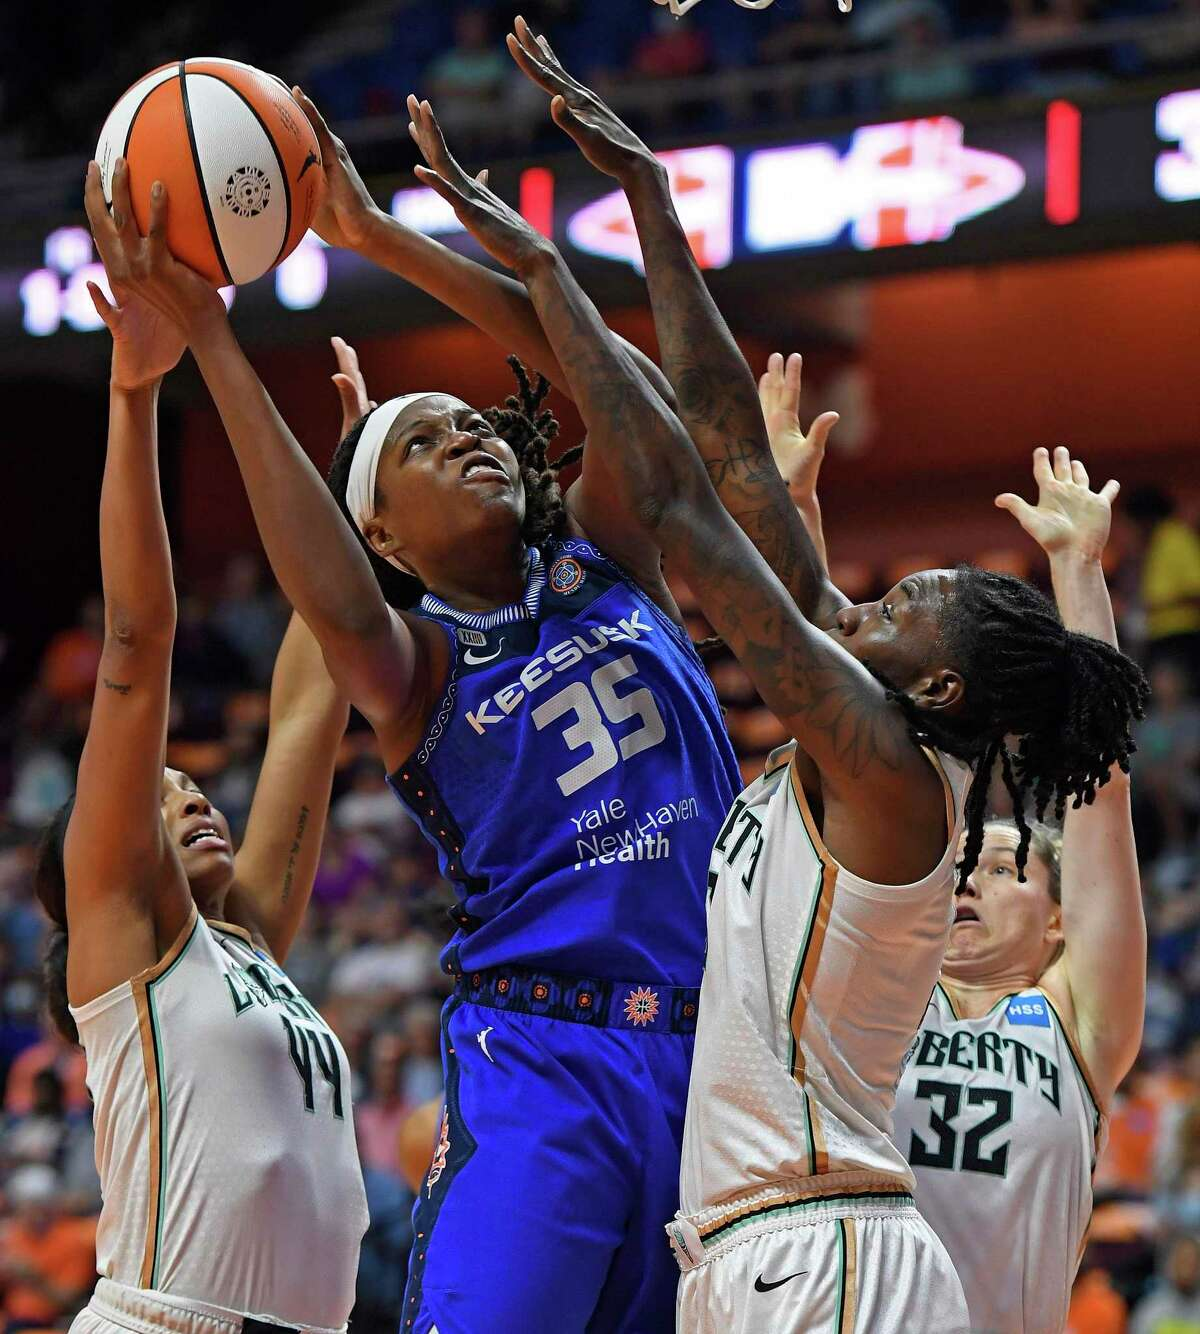 Connecticut Sun forward Jonquel Jones (35) shoots over New York Liberty defenders Betnijah Laney, left, Sami Whitcomb (32) and Natasha Howard during the first half of a WNBA basketball game Wednesday, Sept. 15, 2021, in Uncasville, Conn. (Sean D. Elliot/The Day via AP)